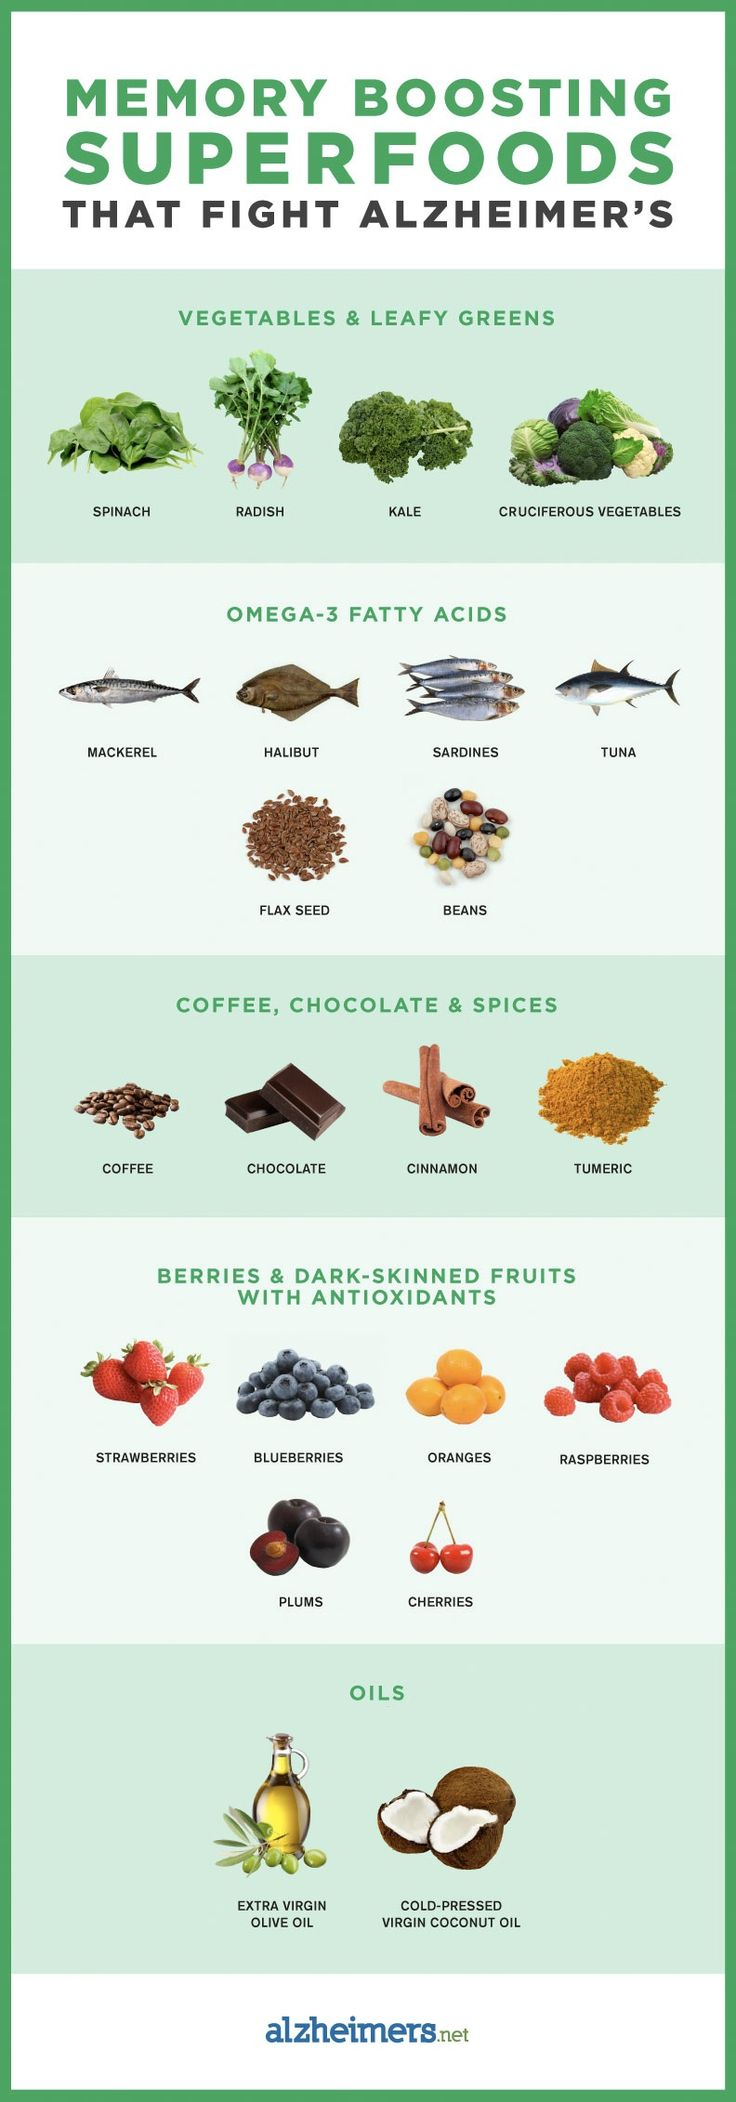 Memory Boosting Superfoods That Fight Alzheimer's #alzheimers #tgen #mindcrowd www.mindcrowd.org